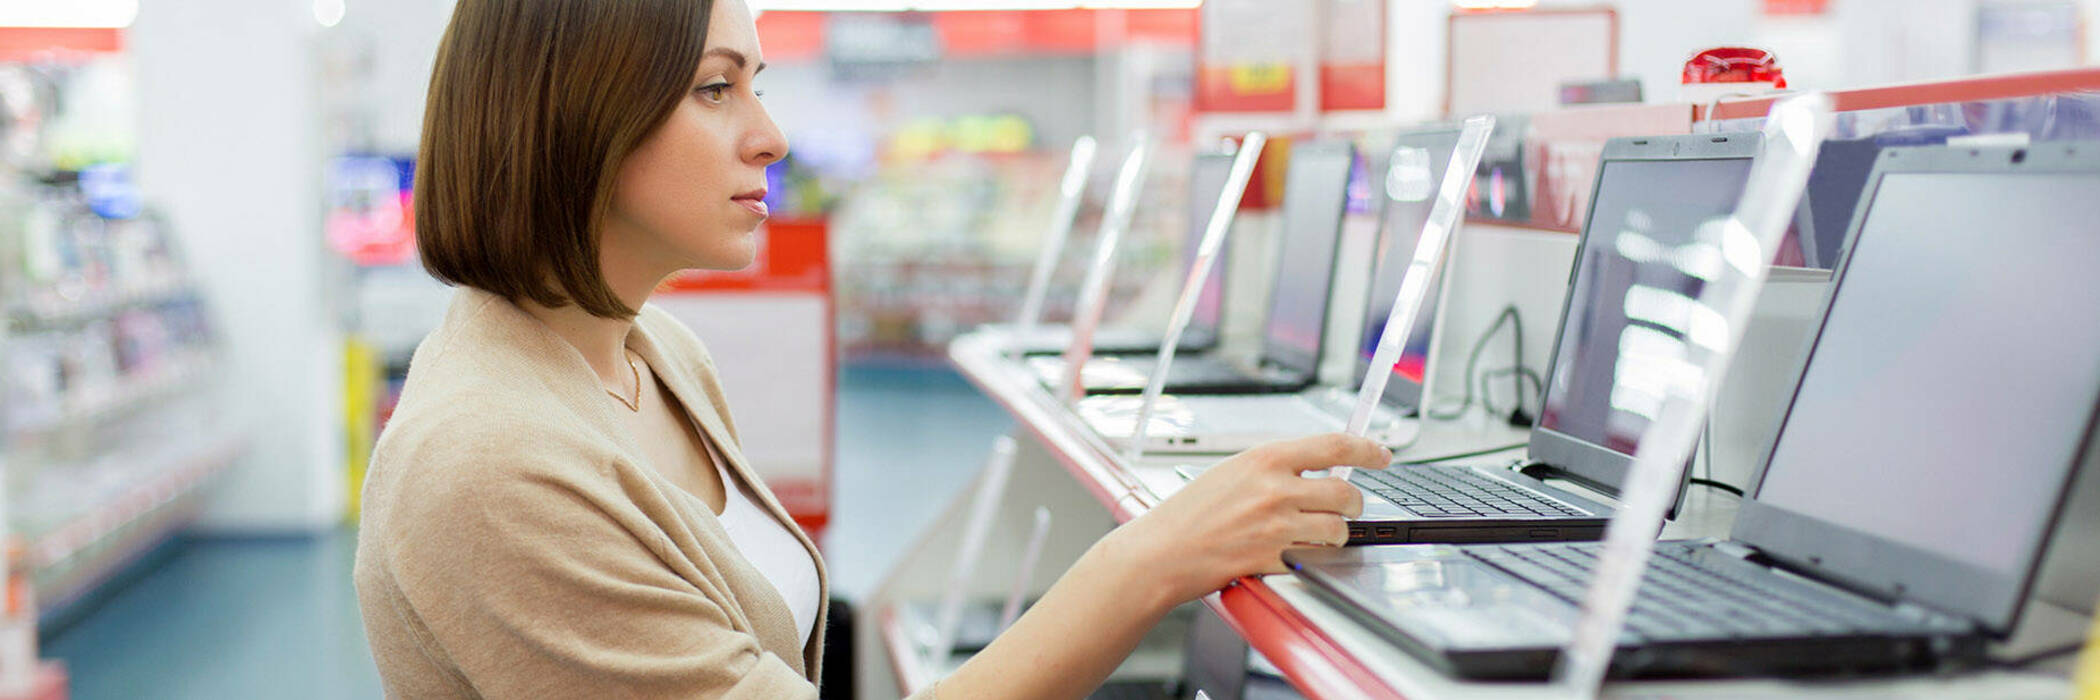 Woman shopping for laptop